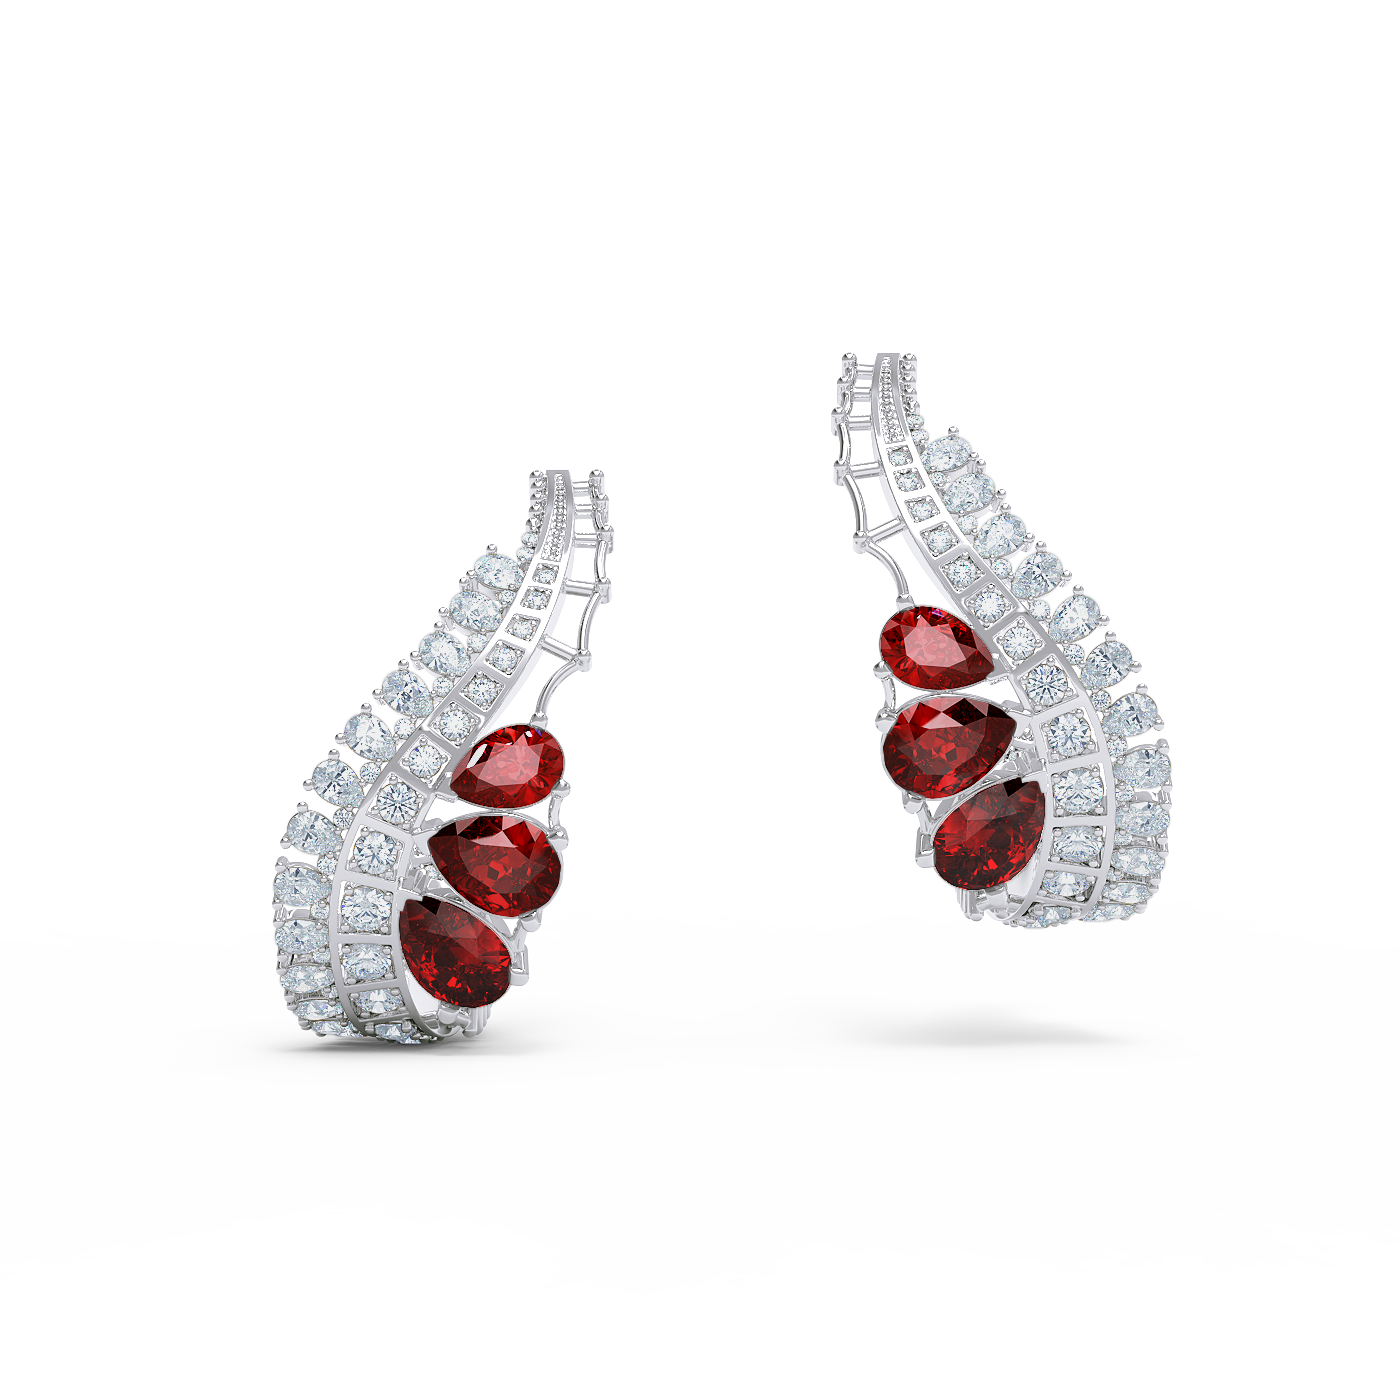 Diamond and ruby earrings by Alice Herald